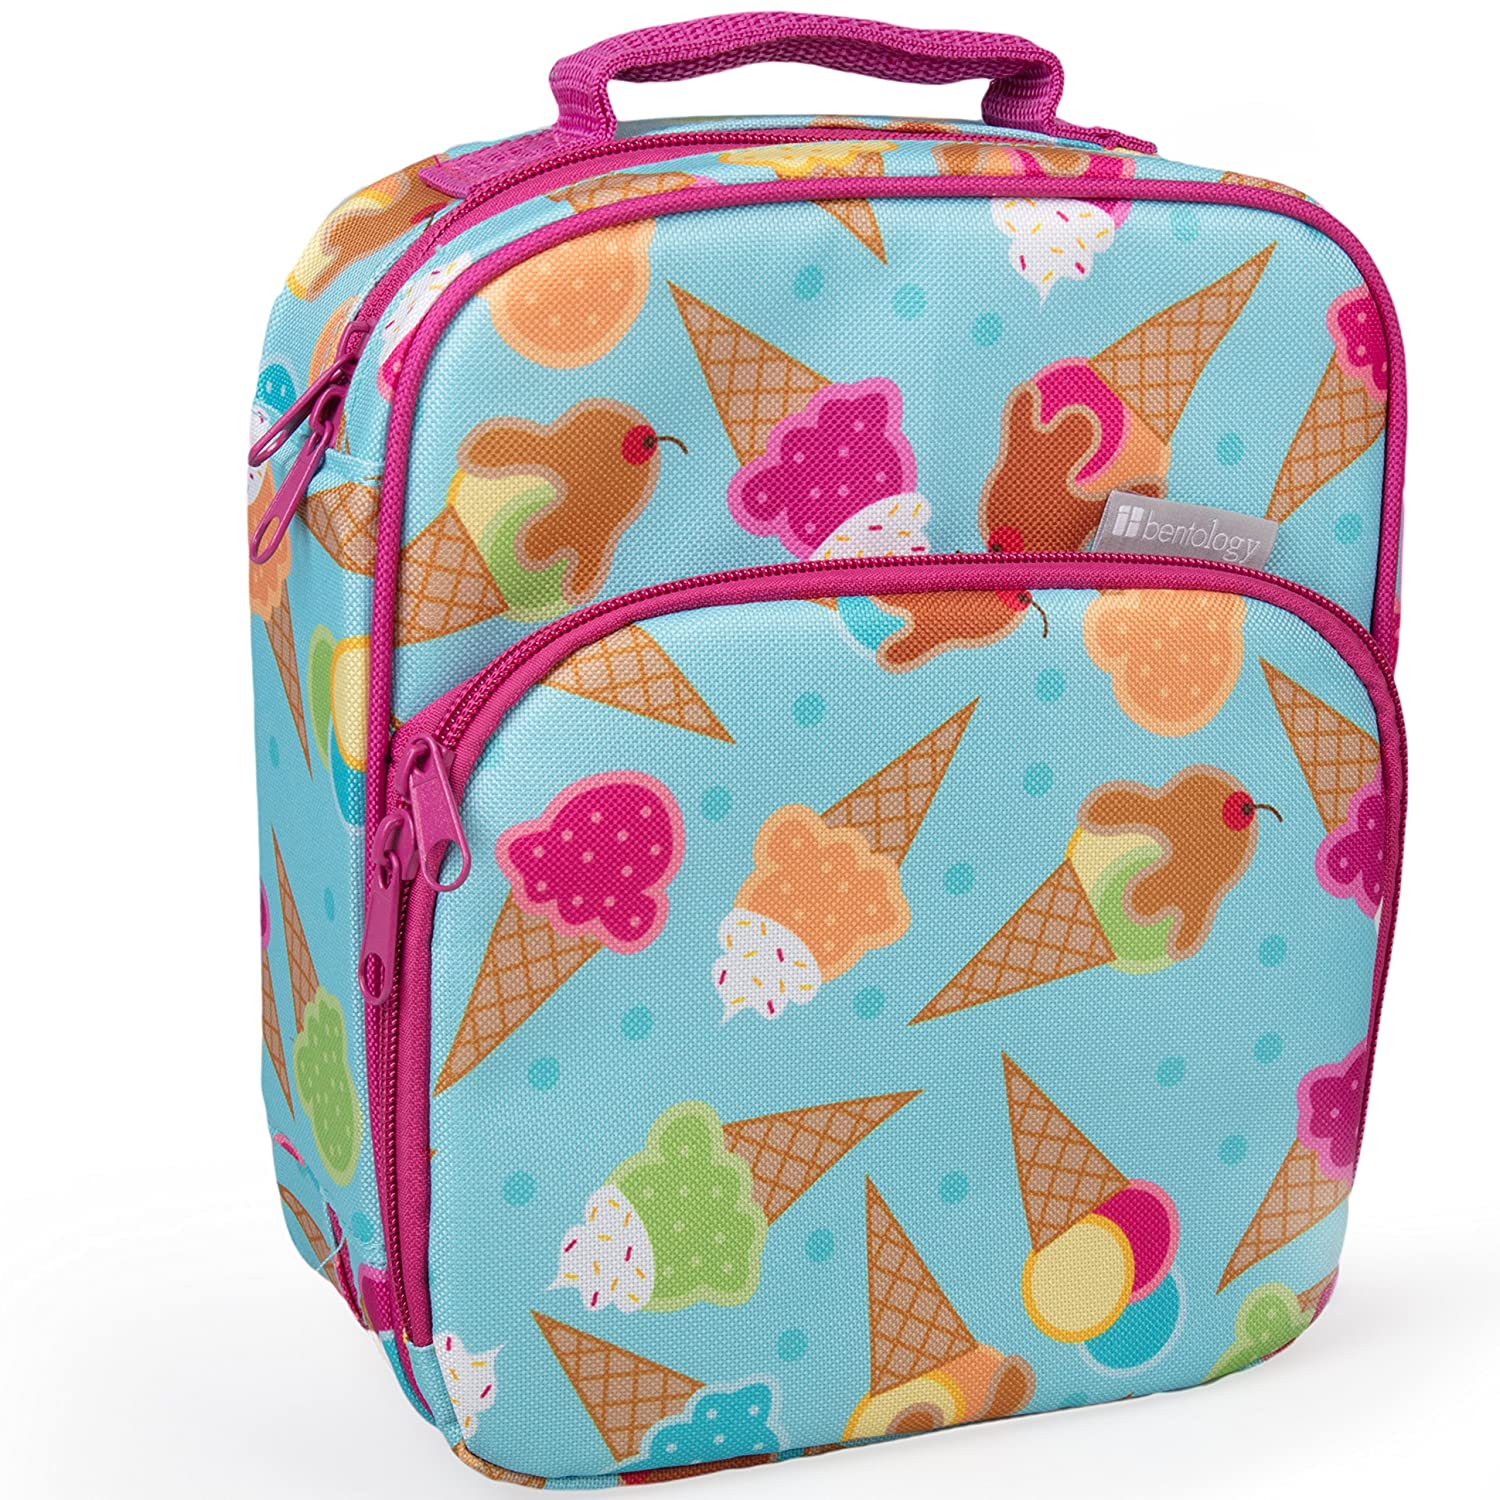 Insulated Durable Lunch Bag - Reusable Meal Tote with Handle and Pockets - Flamingo Bentology